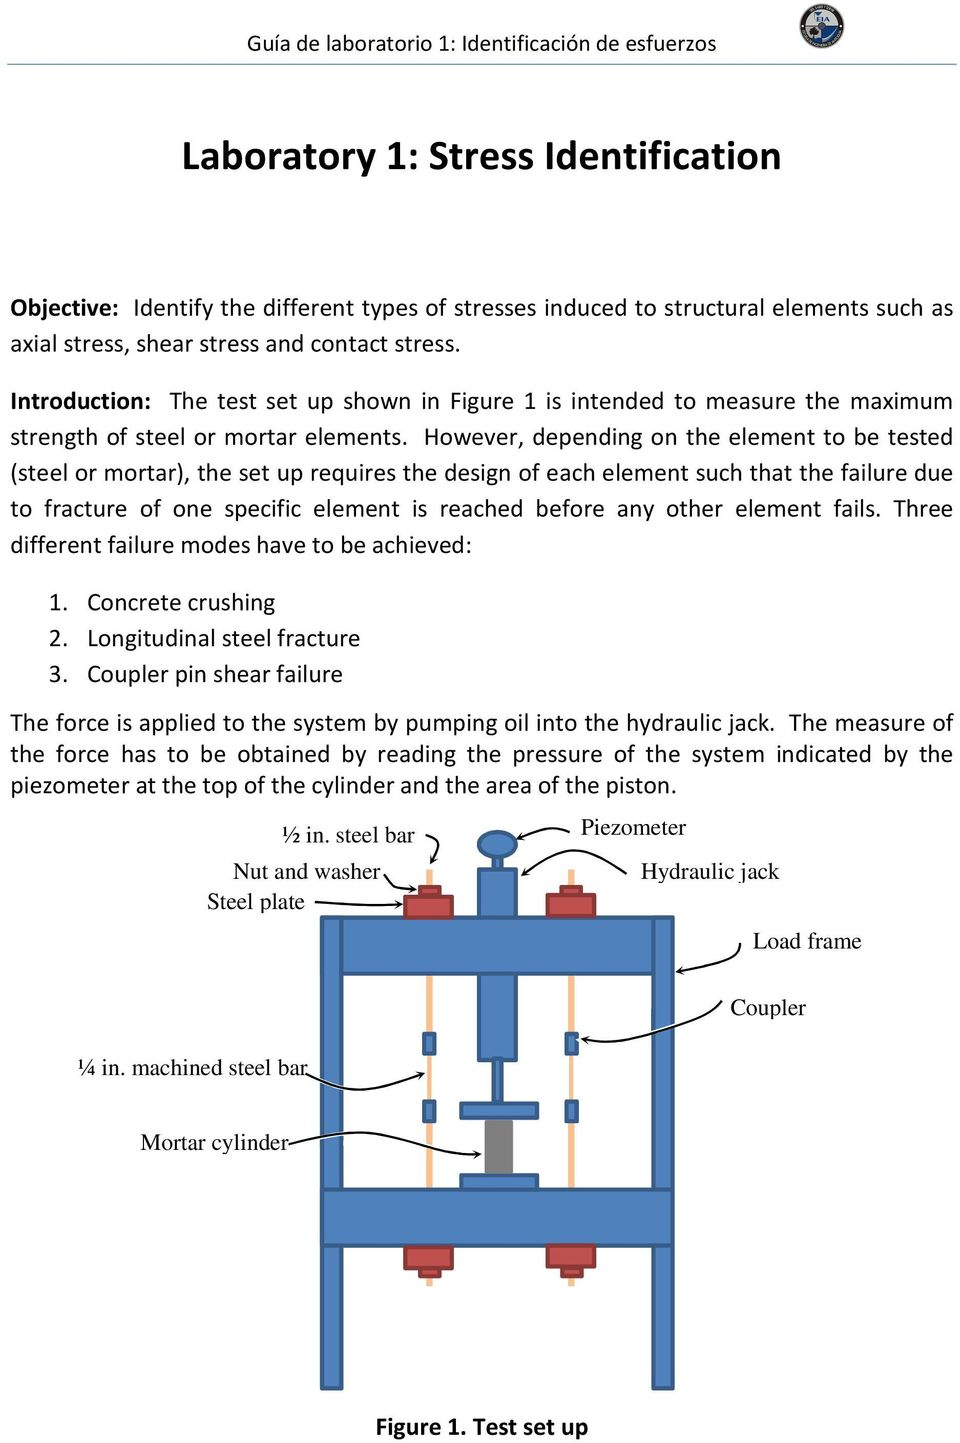 However, depending on the element to be tested (steel or mortar), the set up requires the design of each element such that the failure due to fracture of one specific element is reached before any